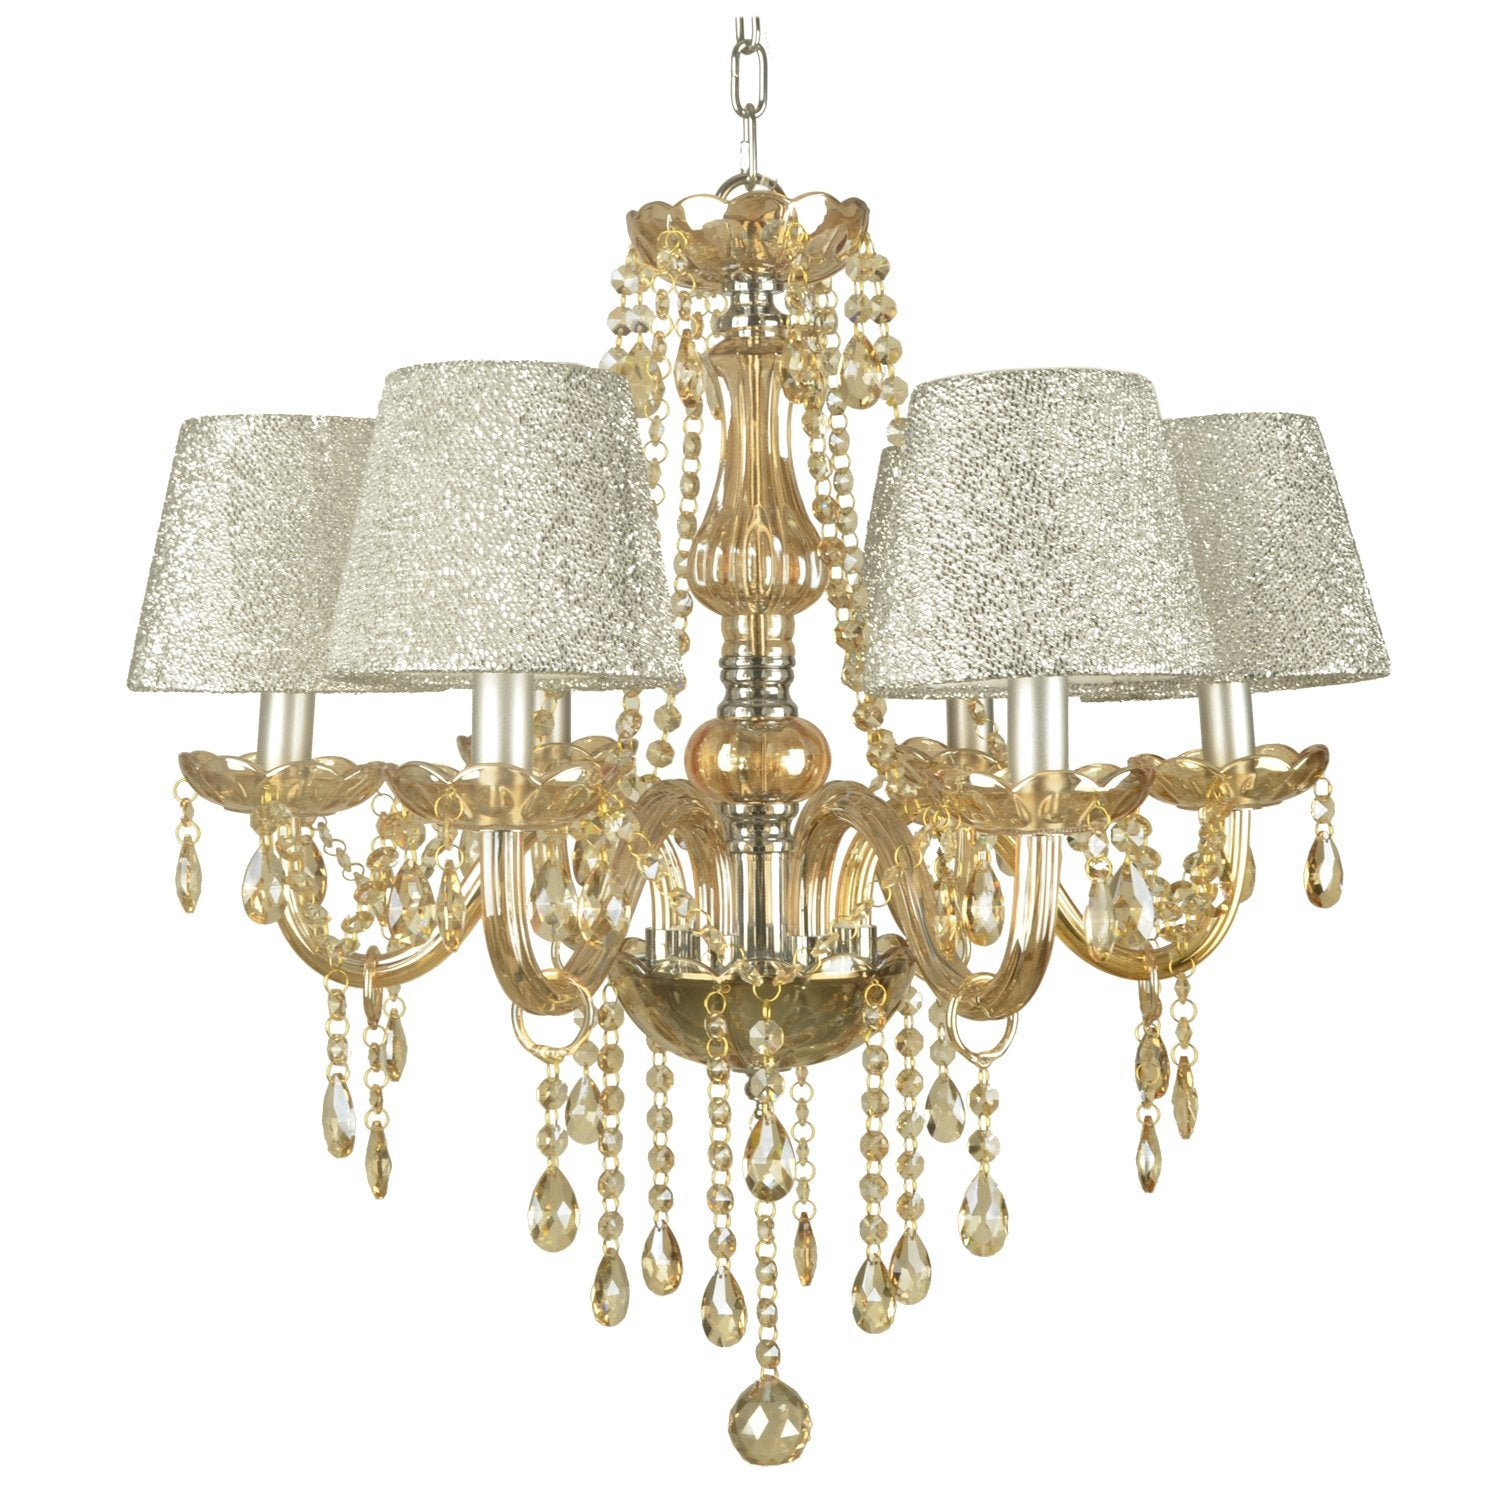 Amber and Chrome Glitz Chandelier - 6 Light - Beaded with Glass Center-Chandeliers-Default-Jack and Jill Boutique